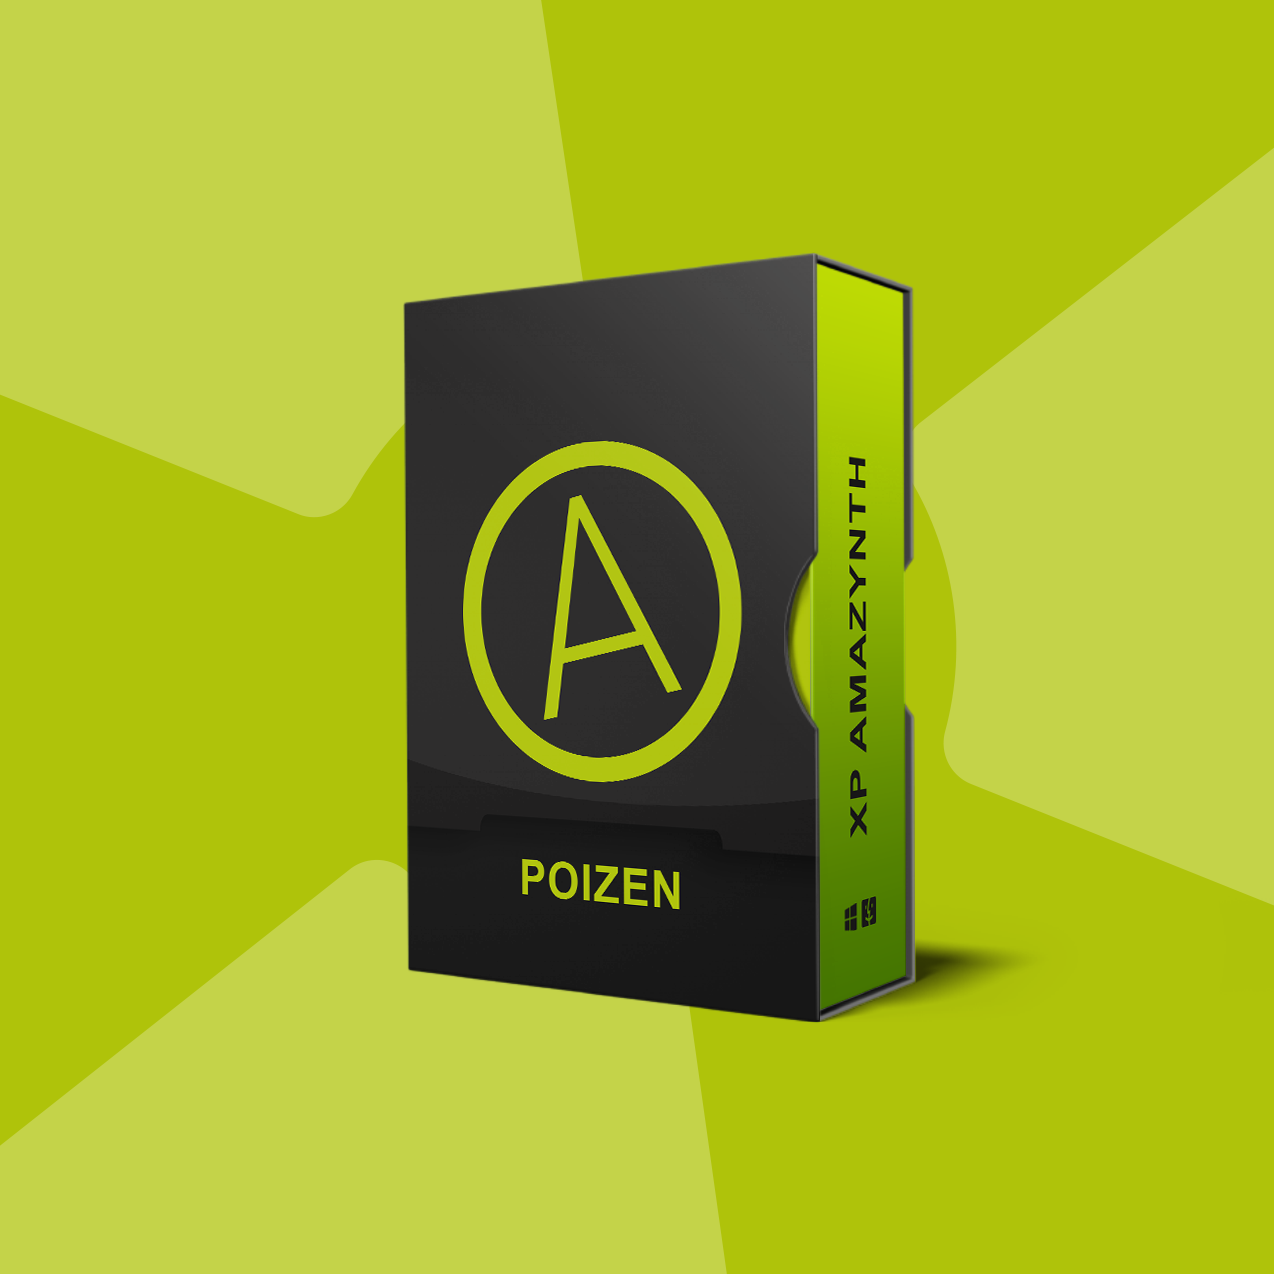 KVR: Poizen by Thenatan - Trap VST Plugin, Audio Units Plugin and